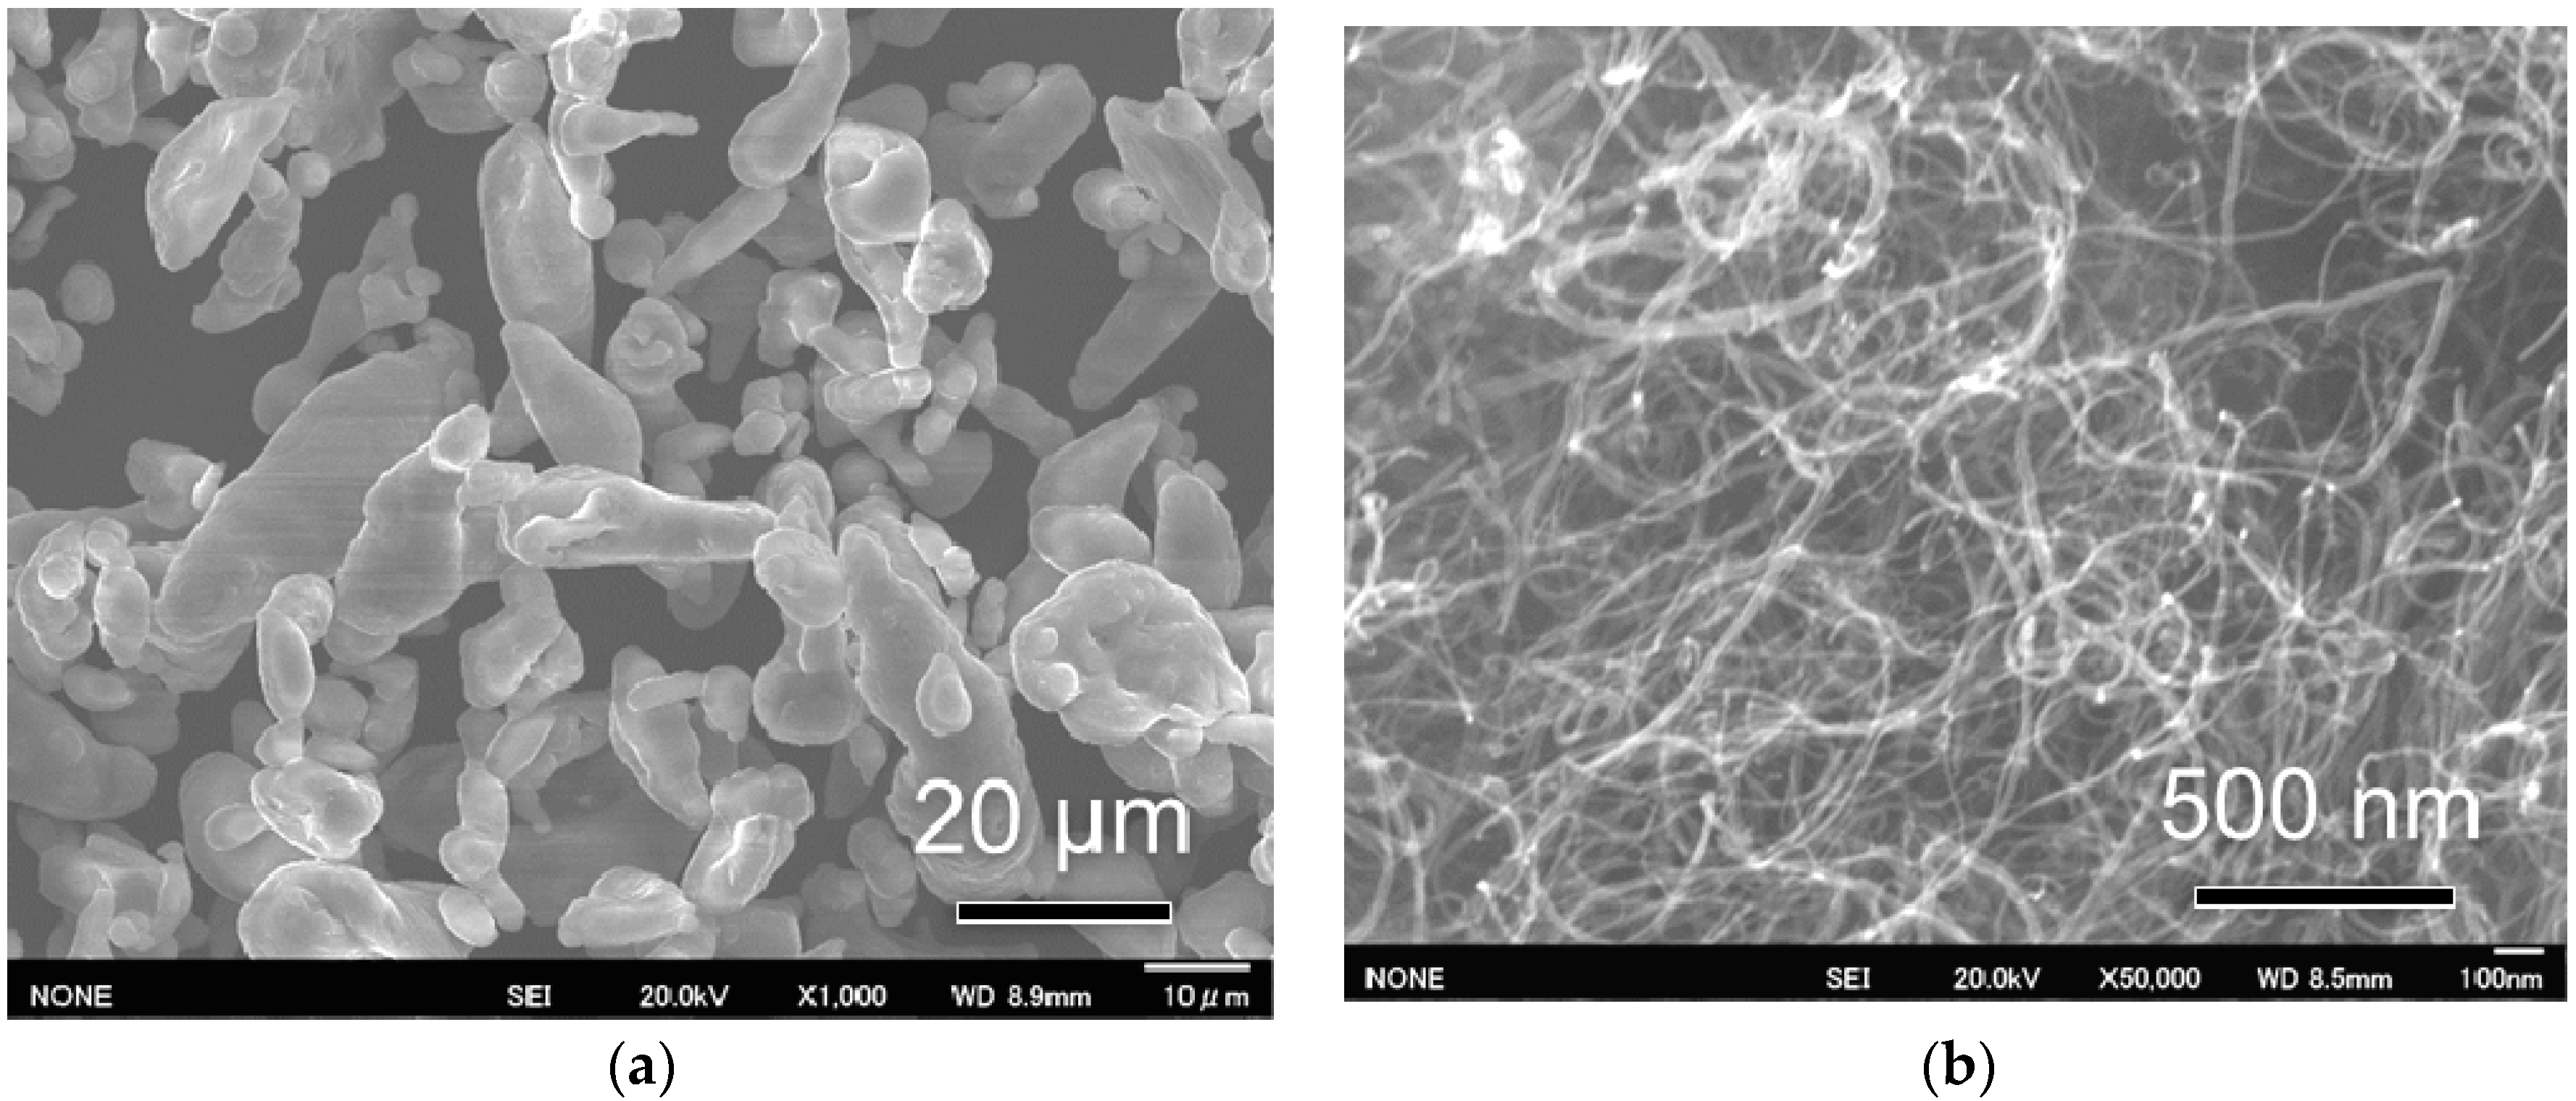 Mining for Gold and Copper using Biohydrometallurgy